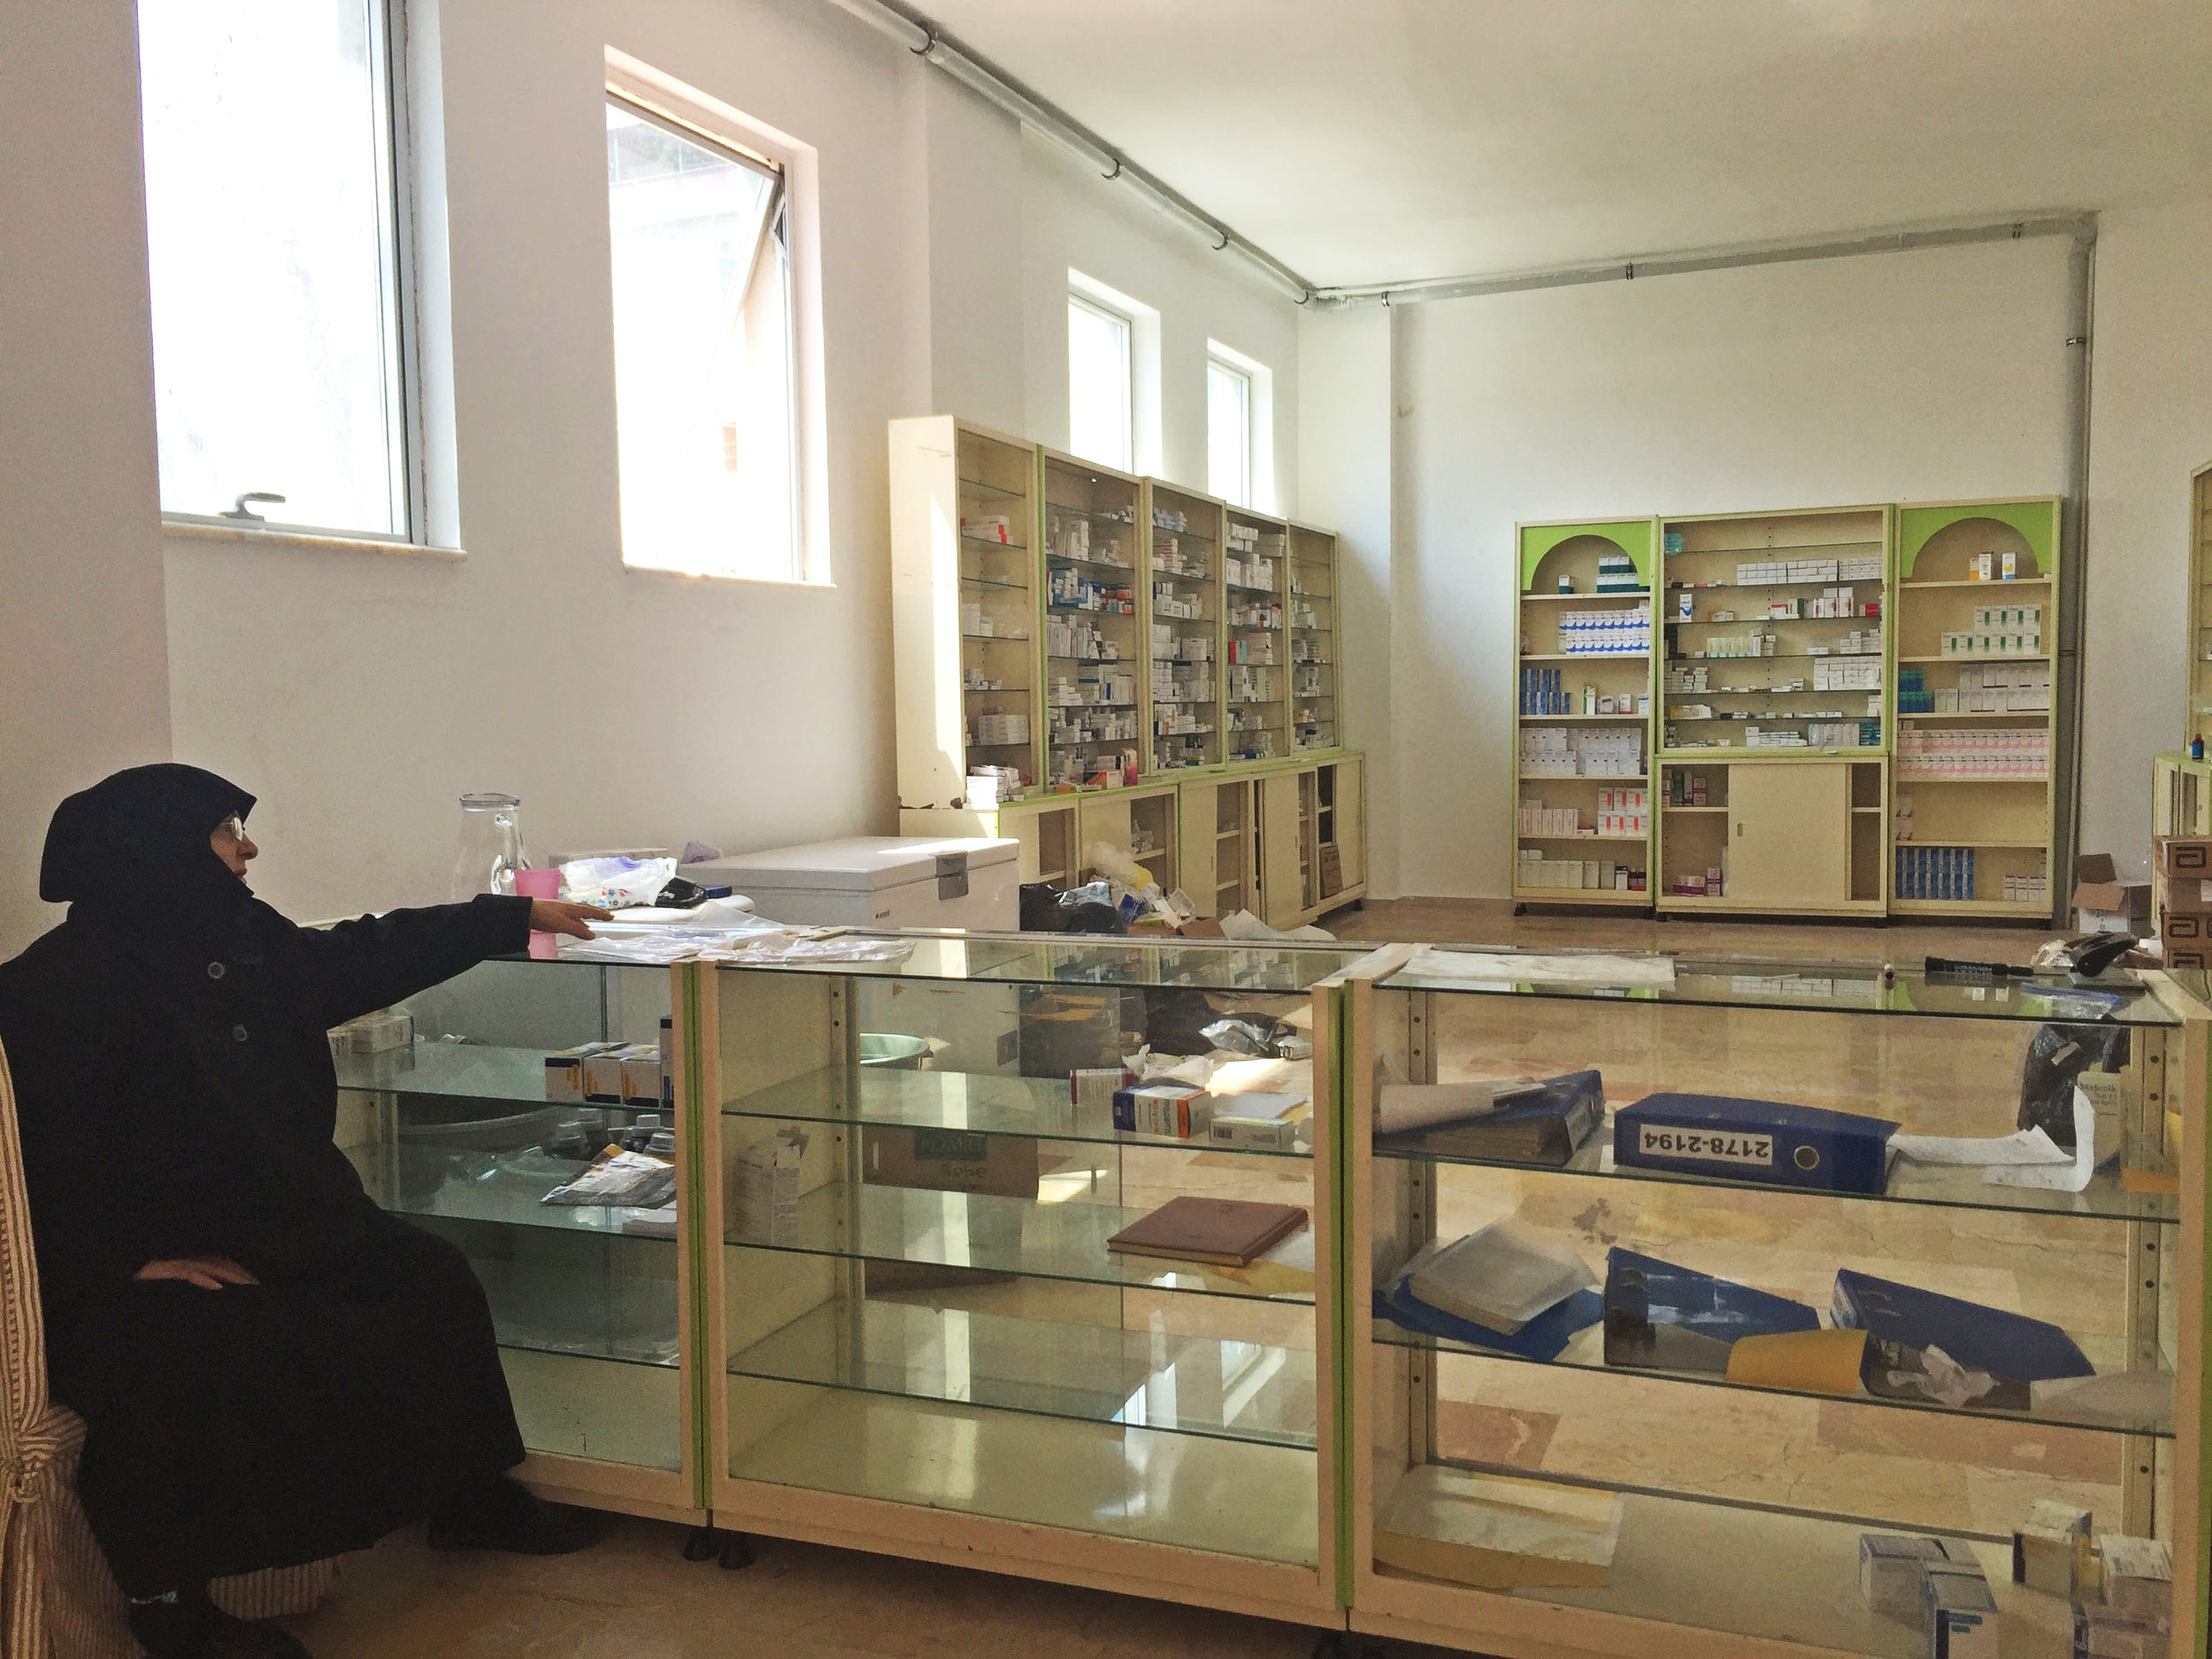 With support from international donors, pharmacies like this one have improved health services access for both refugees and resident Turks in the neighborhood. Photo by author.